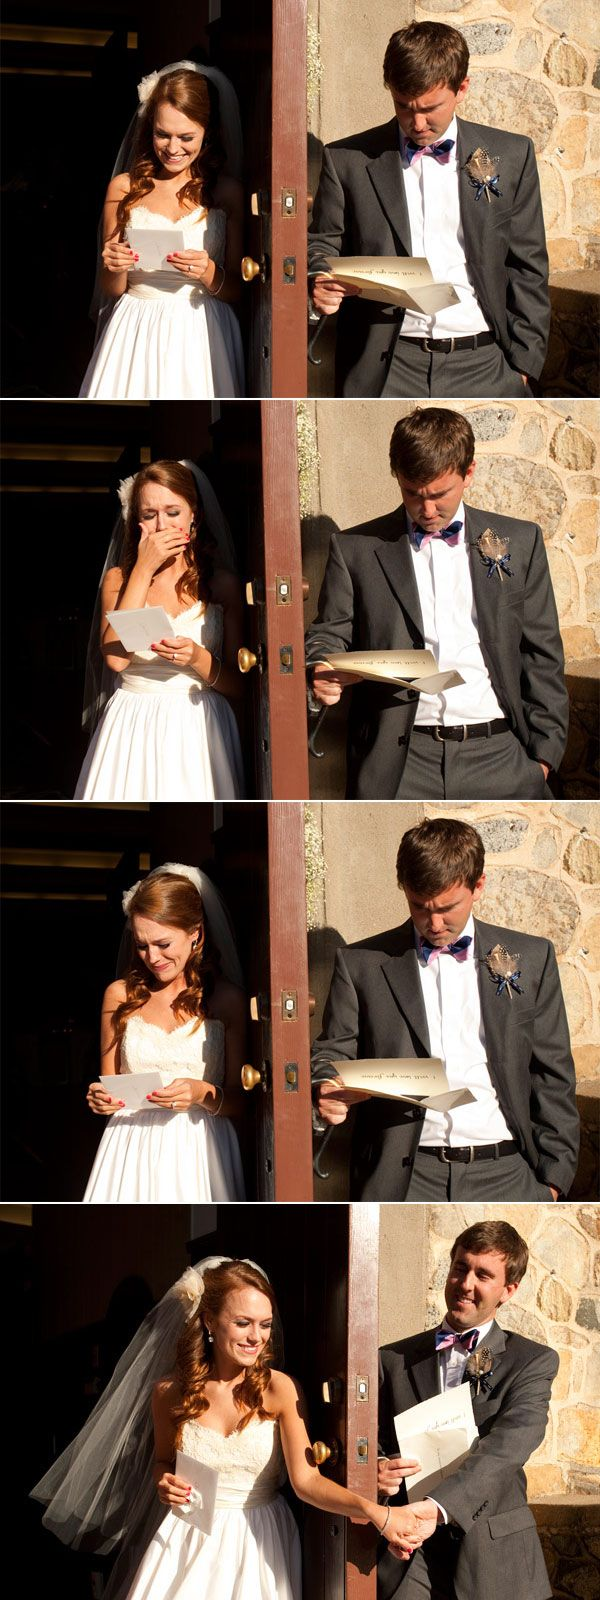 So, I have to pin this for the sole fact that the bride goes through several stages of emotions and the groom just looks confused.